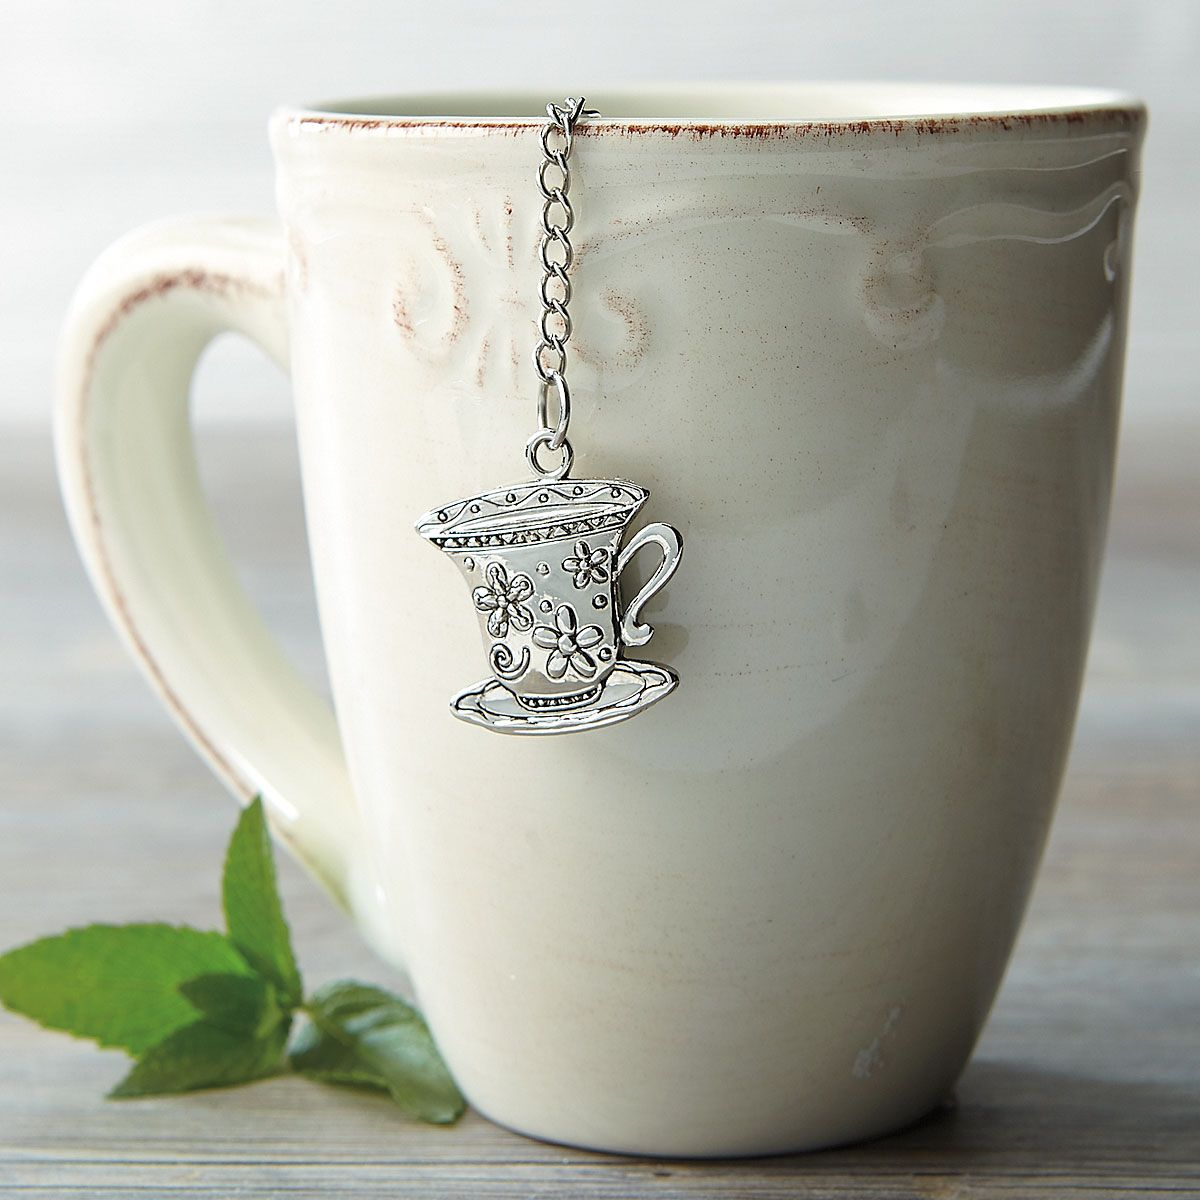 Tea Infuser Charms - Charming Cup